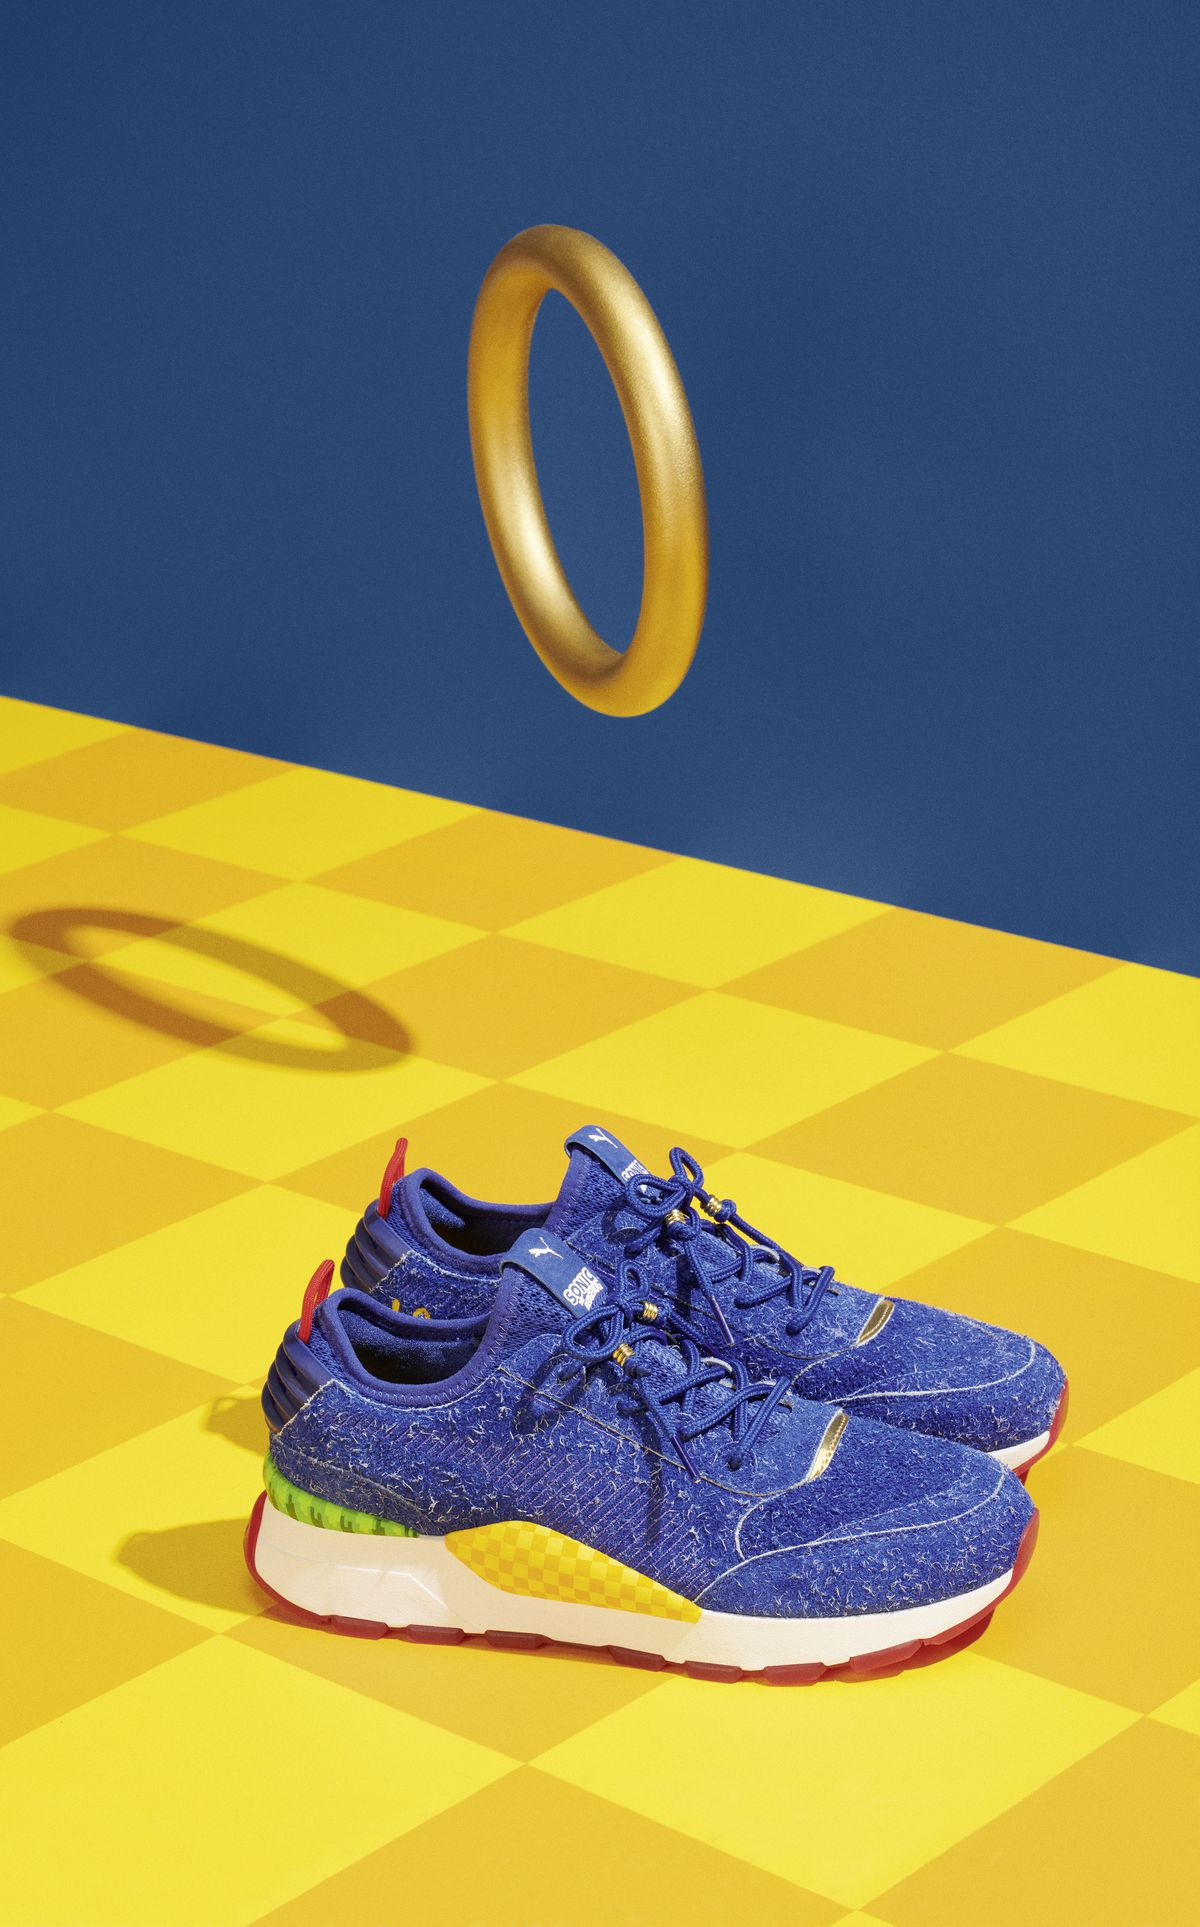 a0dbc1f37b8b Puma s Sonic the Hedgehog sneakers on sale starting June 5 - Polygon